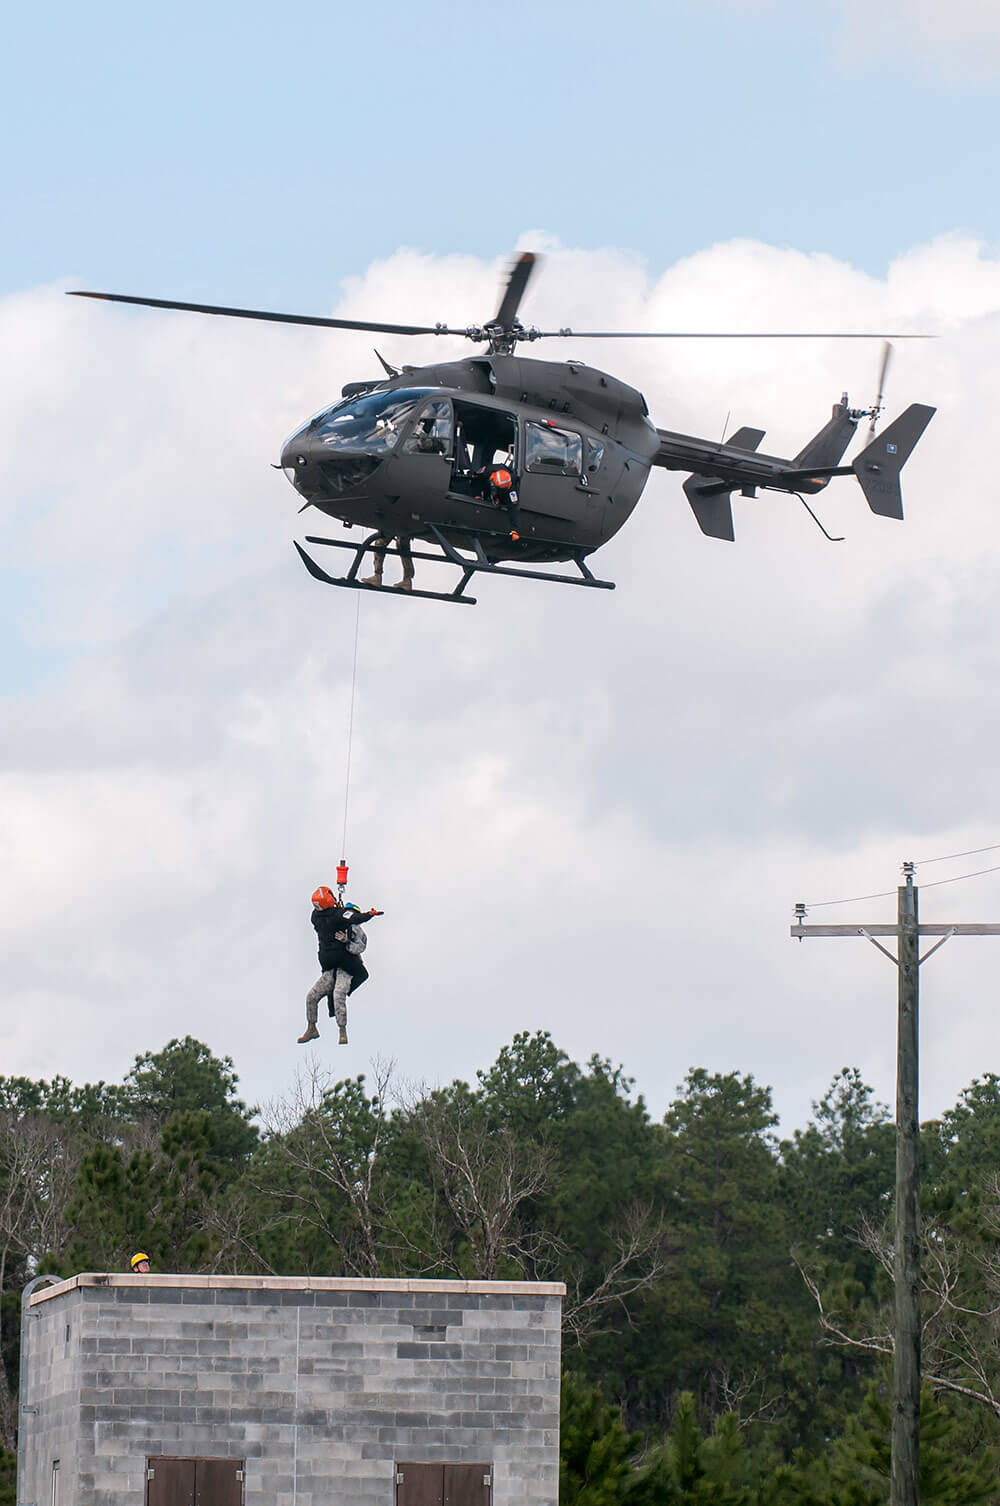 A South Carolina Army National Guard UH-72 Lakota helicopter crew hovers over buildings at the Combined Arms Combat Training Facility on Camp Shelby as members of the South Carolina Helicopter Aquatic Rescue Team hoist a simulated natural disaster victim from a rooftop during Patriot South 2018. Ohio National Guard photo by TSgt Nic Kuetemeyer